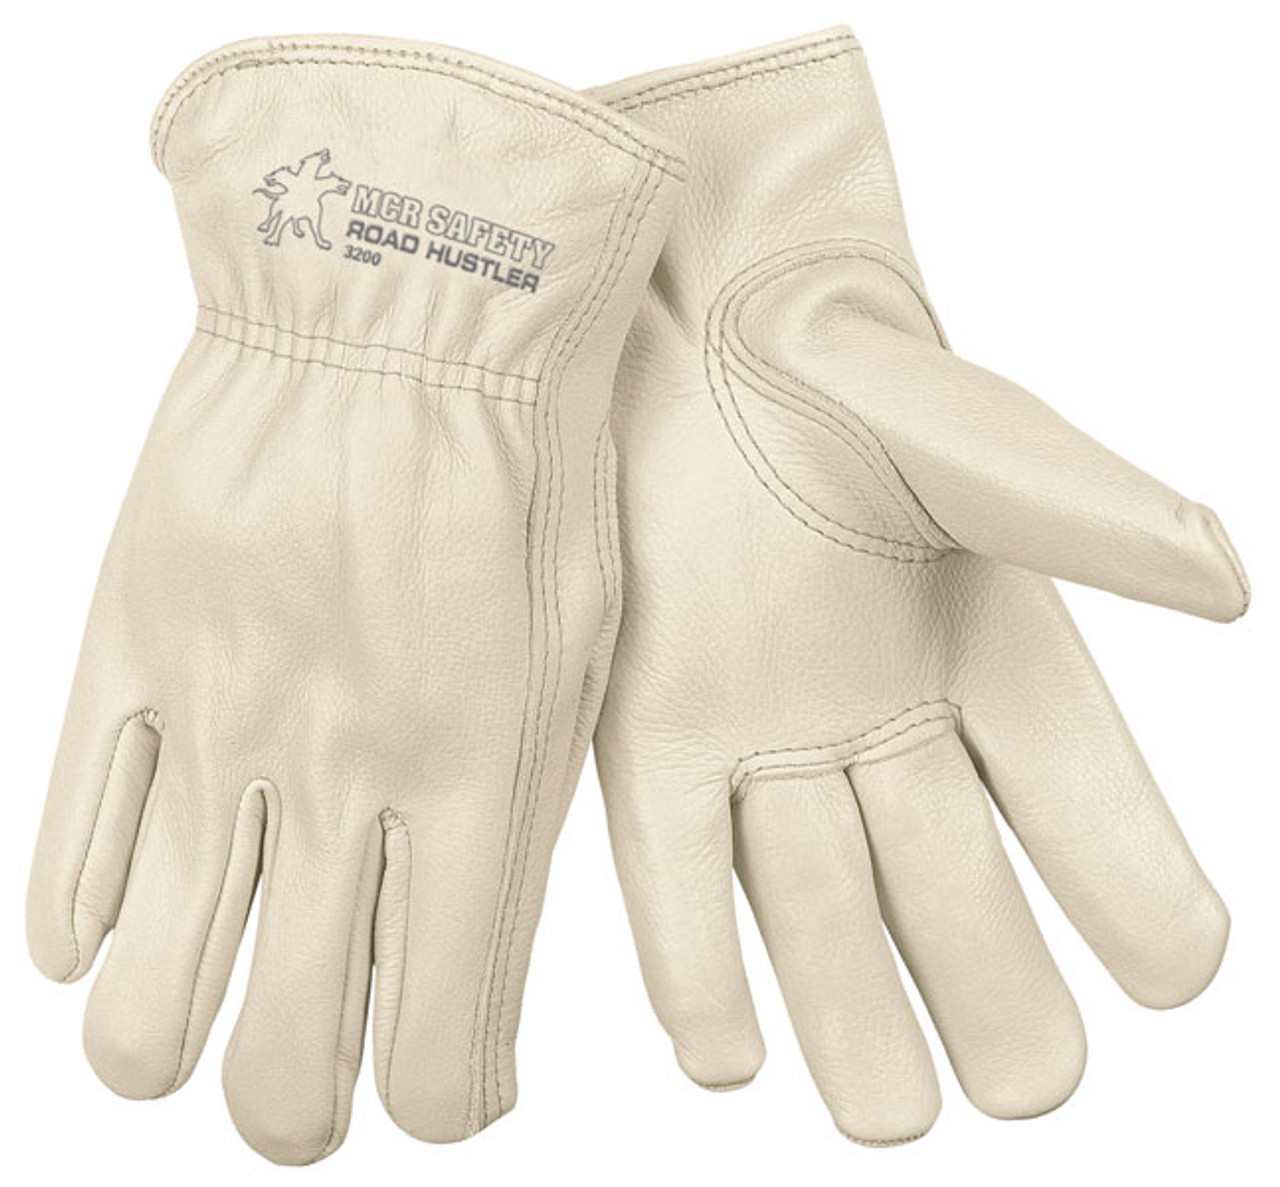 Memphis Gloves 3200L Road Hustler Cow Leather Gloves, Size Large (12 Pair)